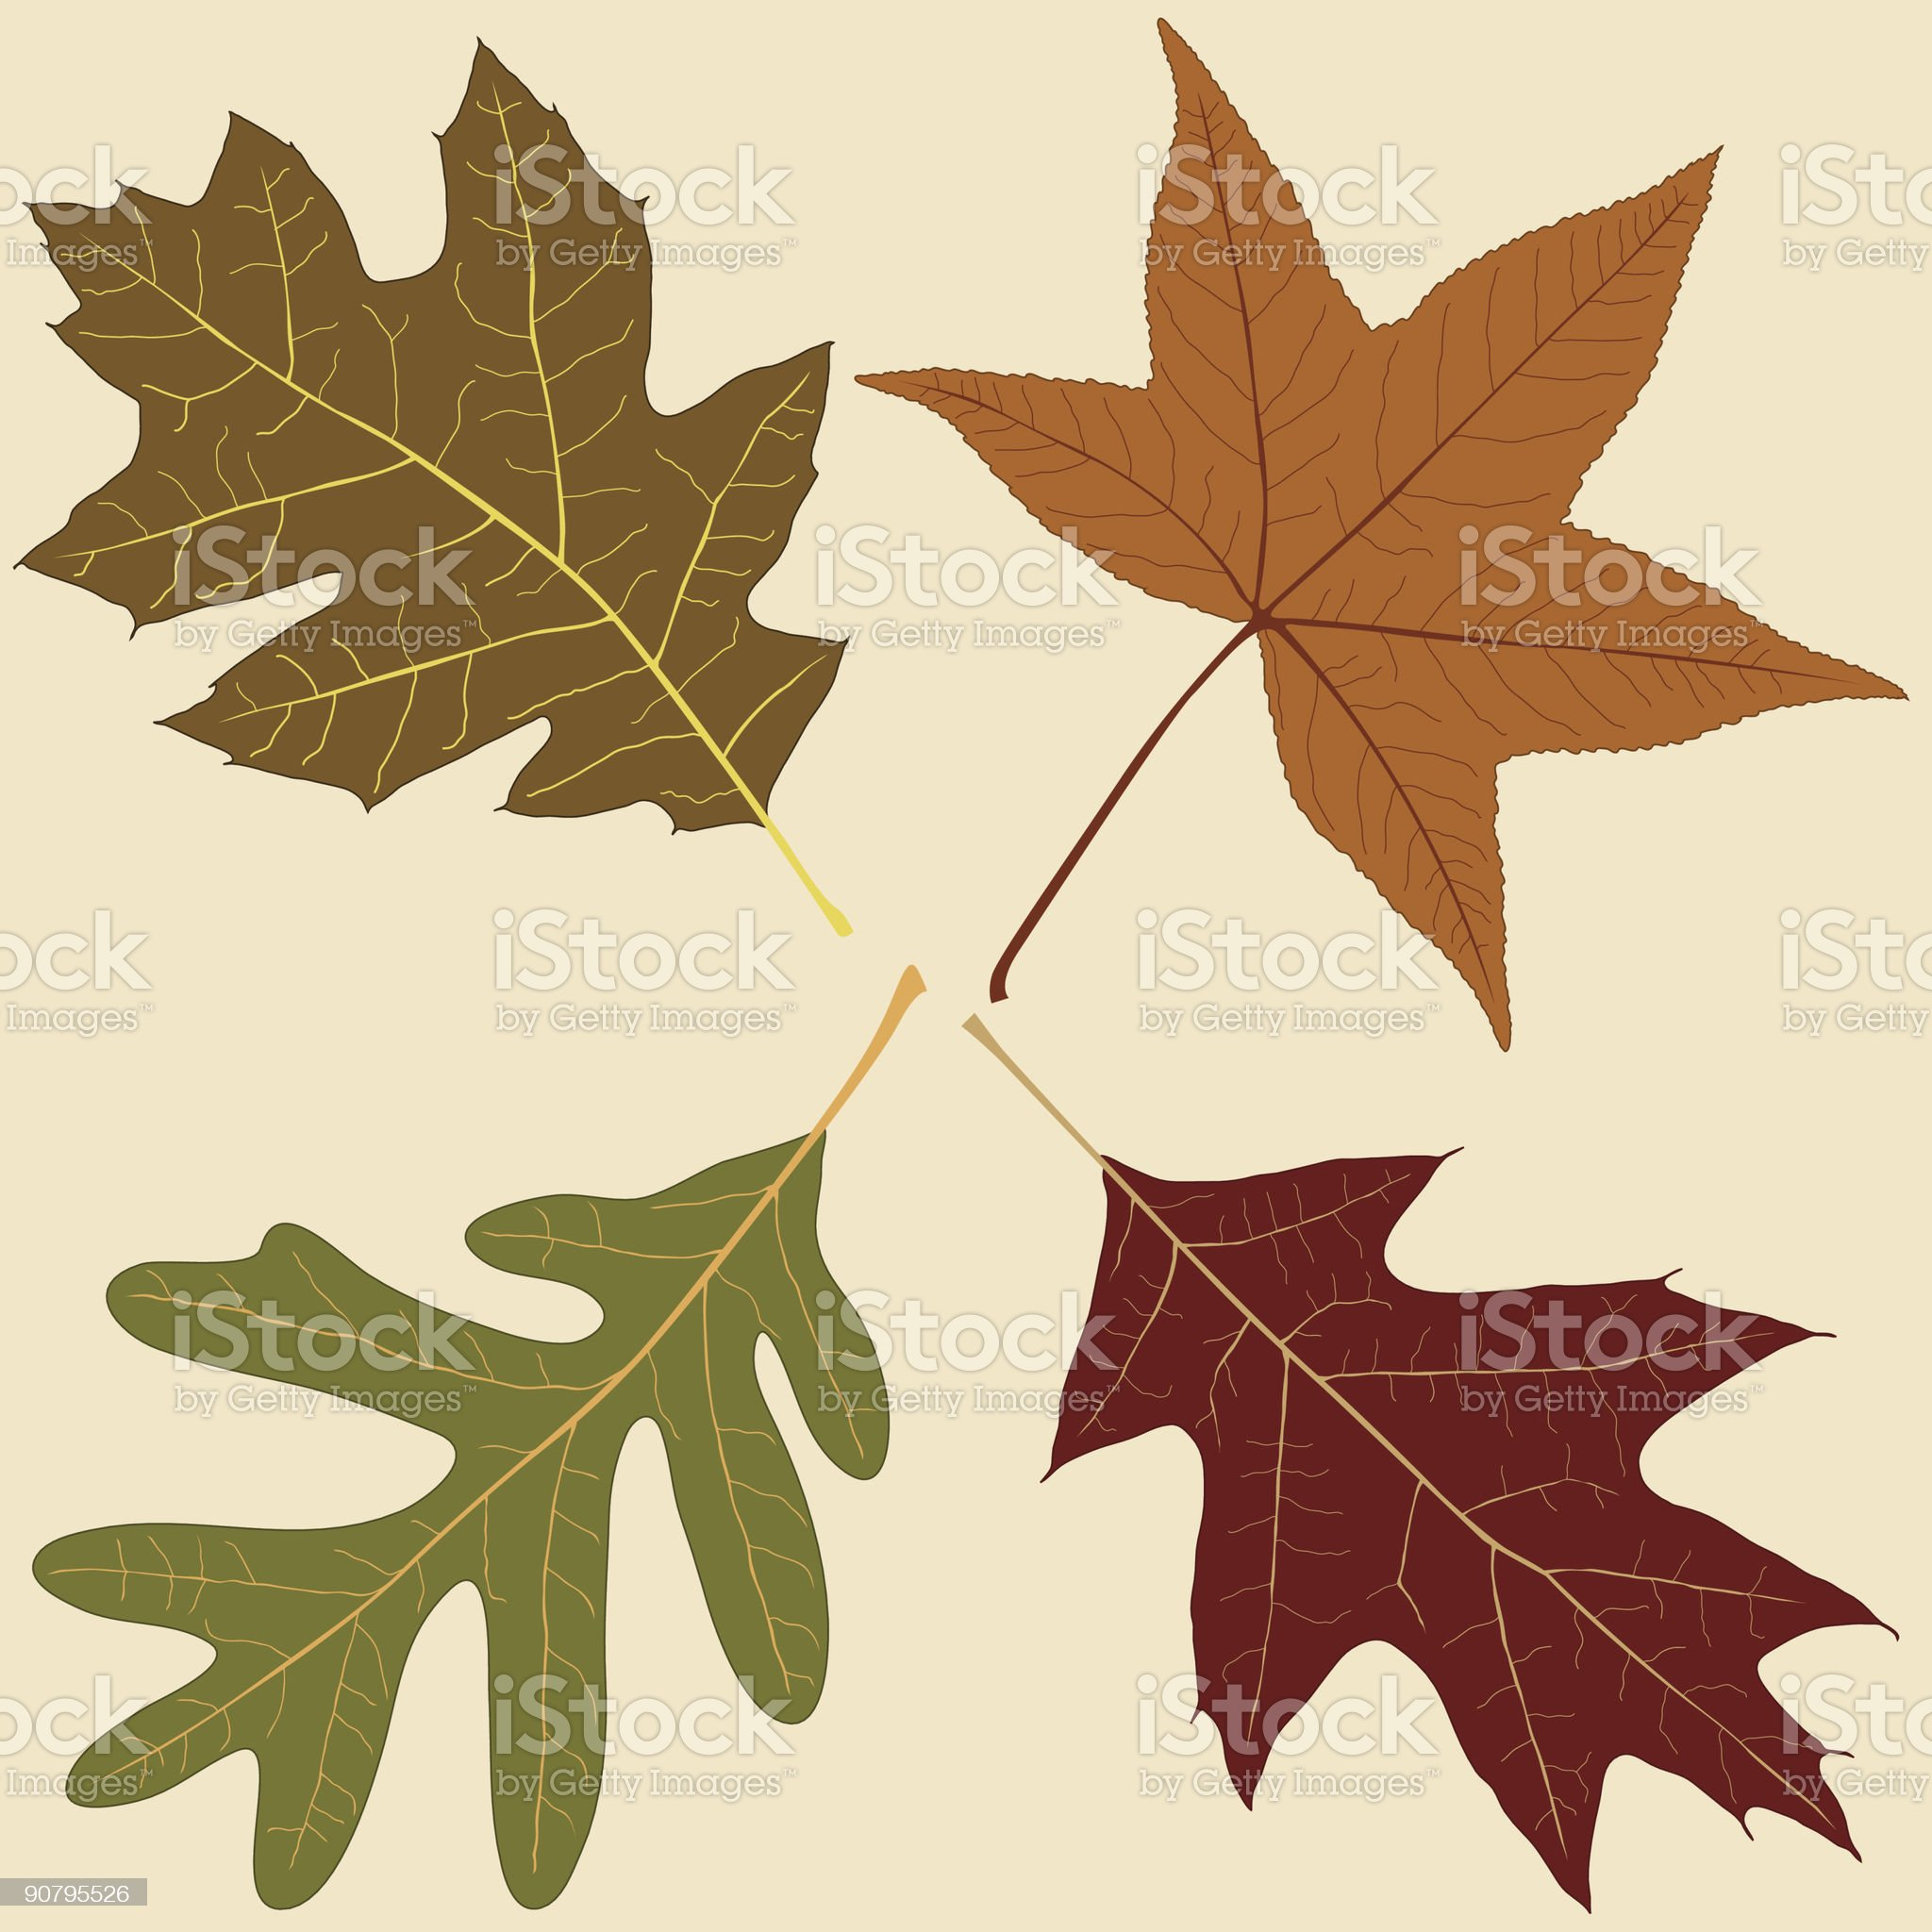 Four Fall Leaves royalty-free stock vector art